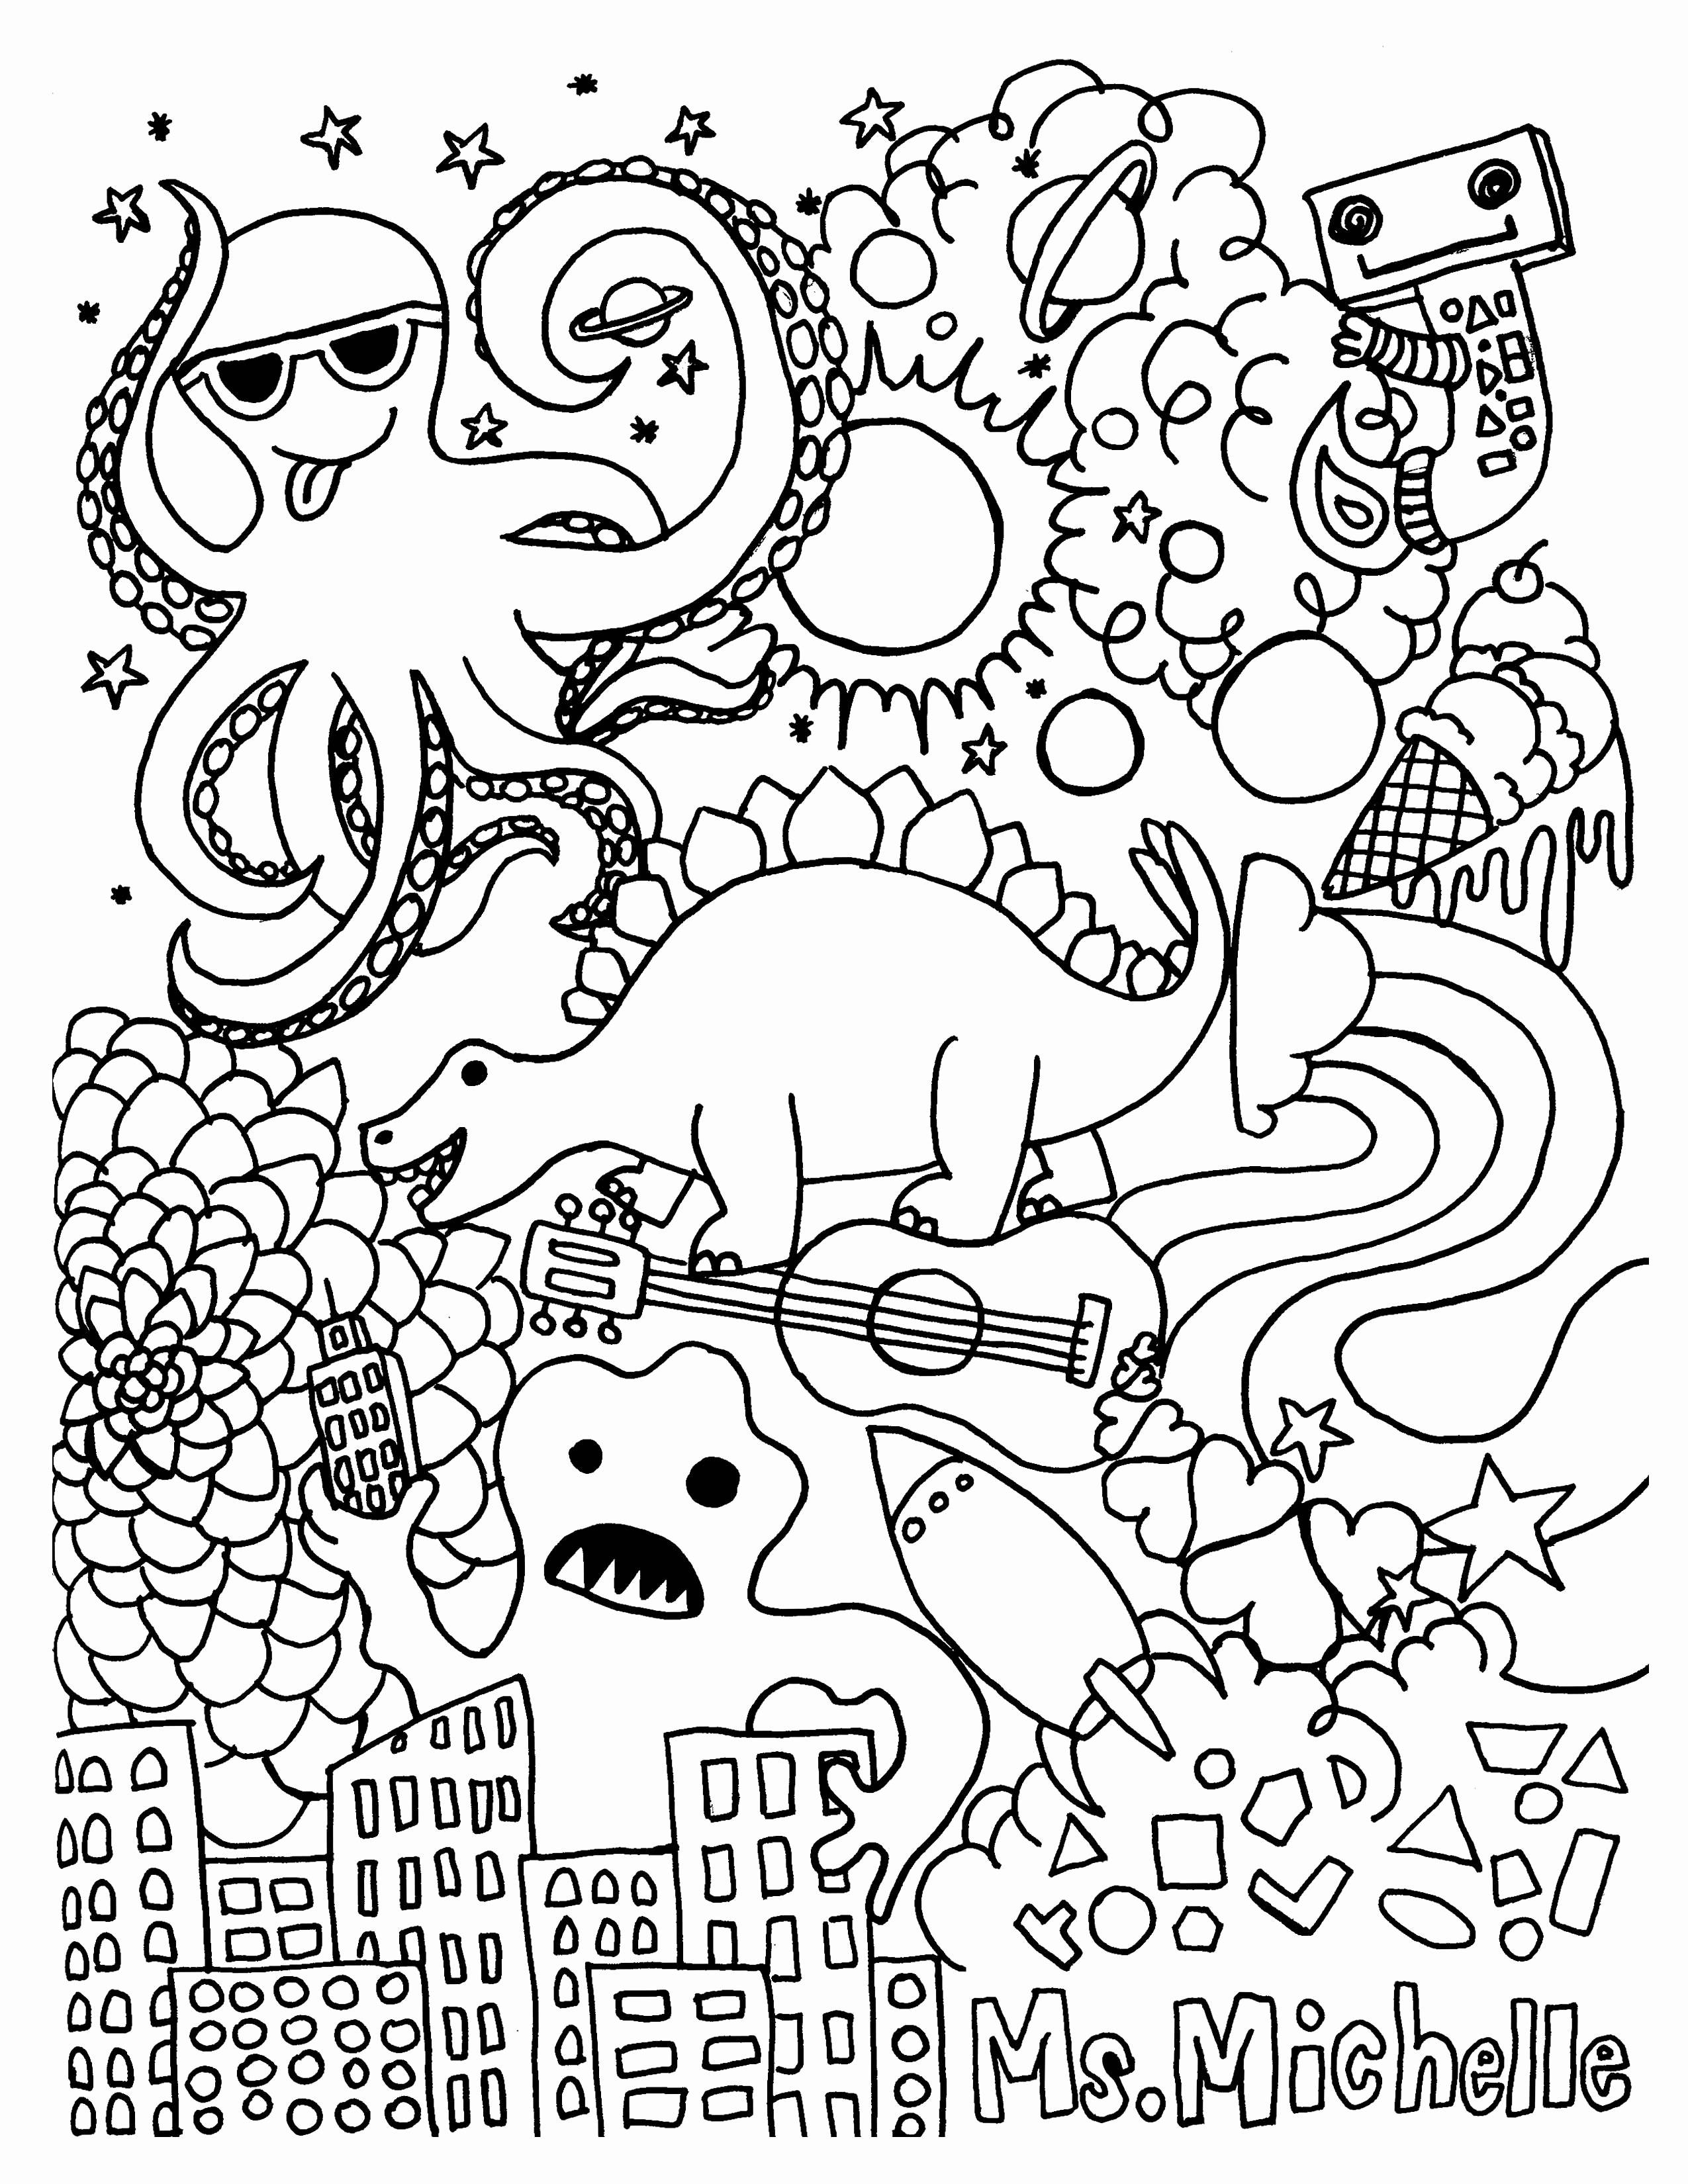 Sponge Bob Halloween Coloring Pages  to Print 14r - To print for your project